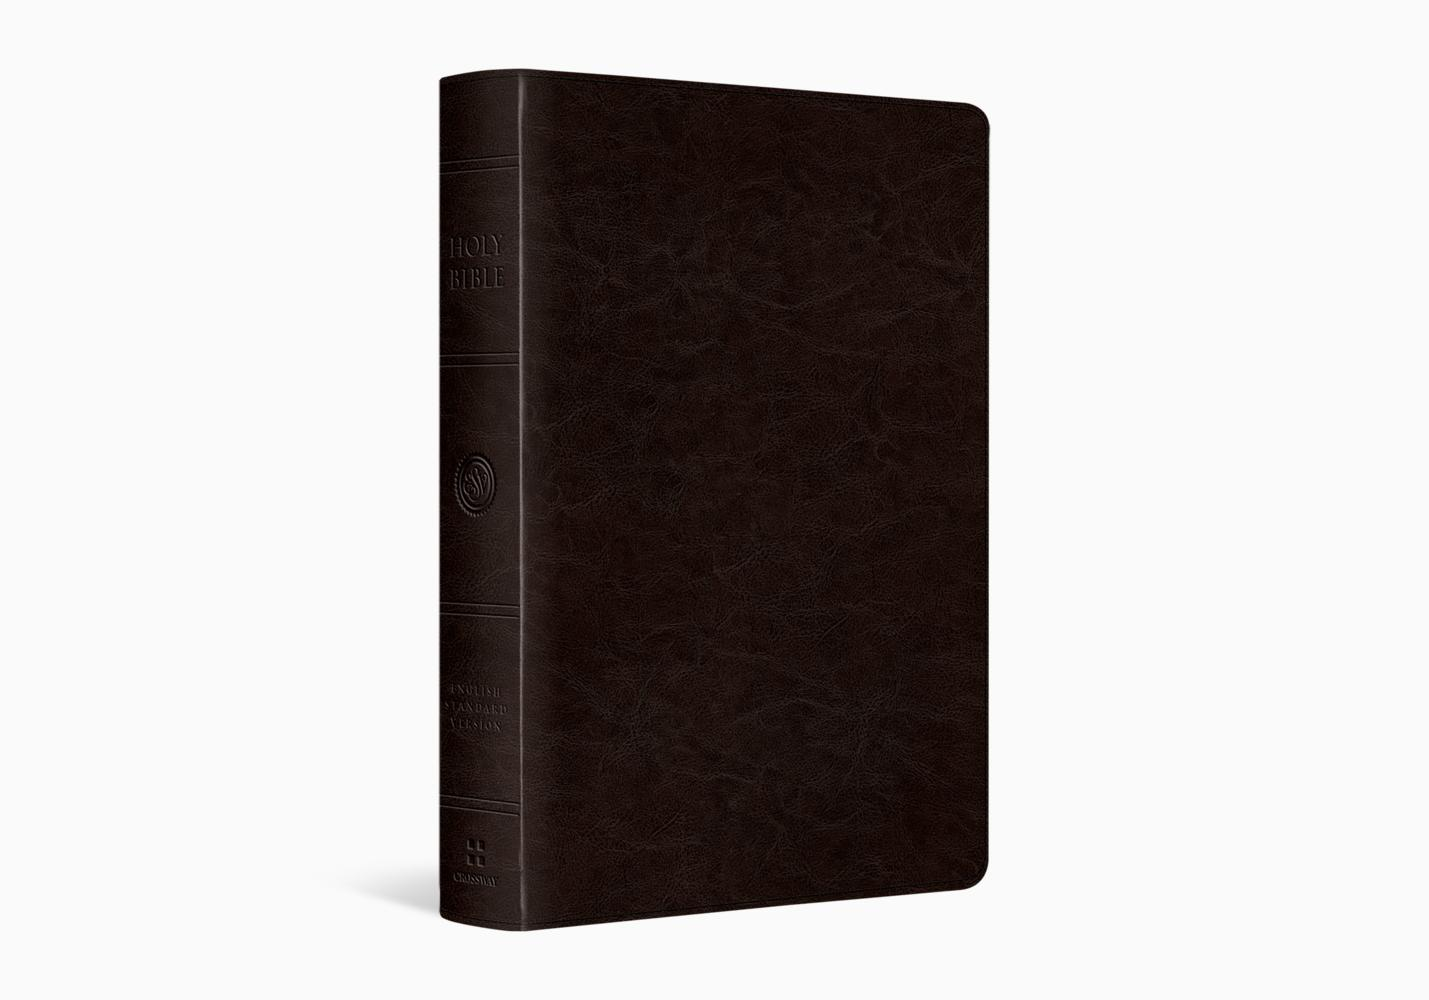 ESV Reference Bible